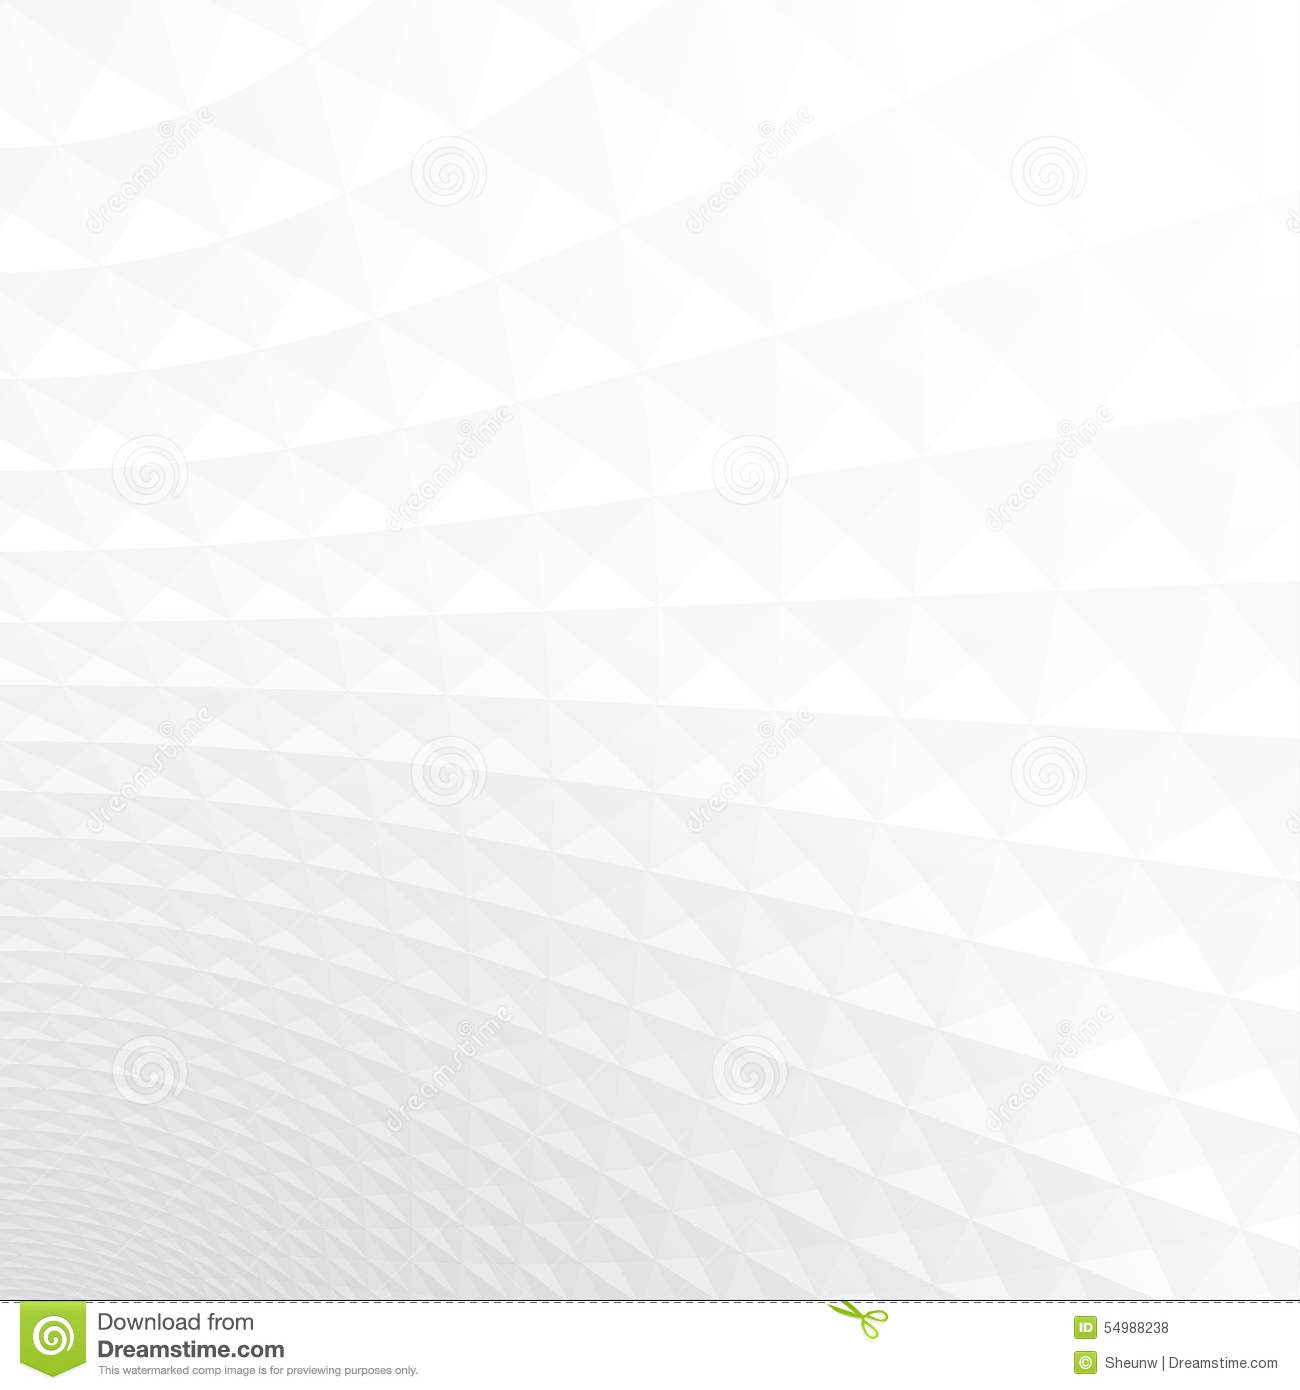 Designer White Abstract Ceramic Wall Tile Pack Of 8 L: Abstract Light Perspective Background, White And Gray